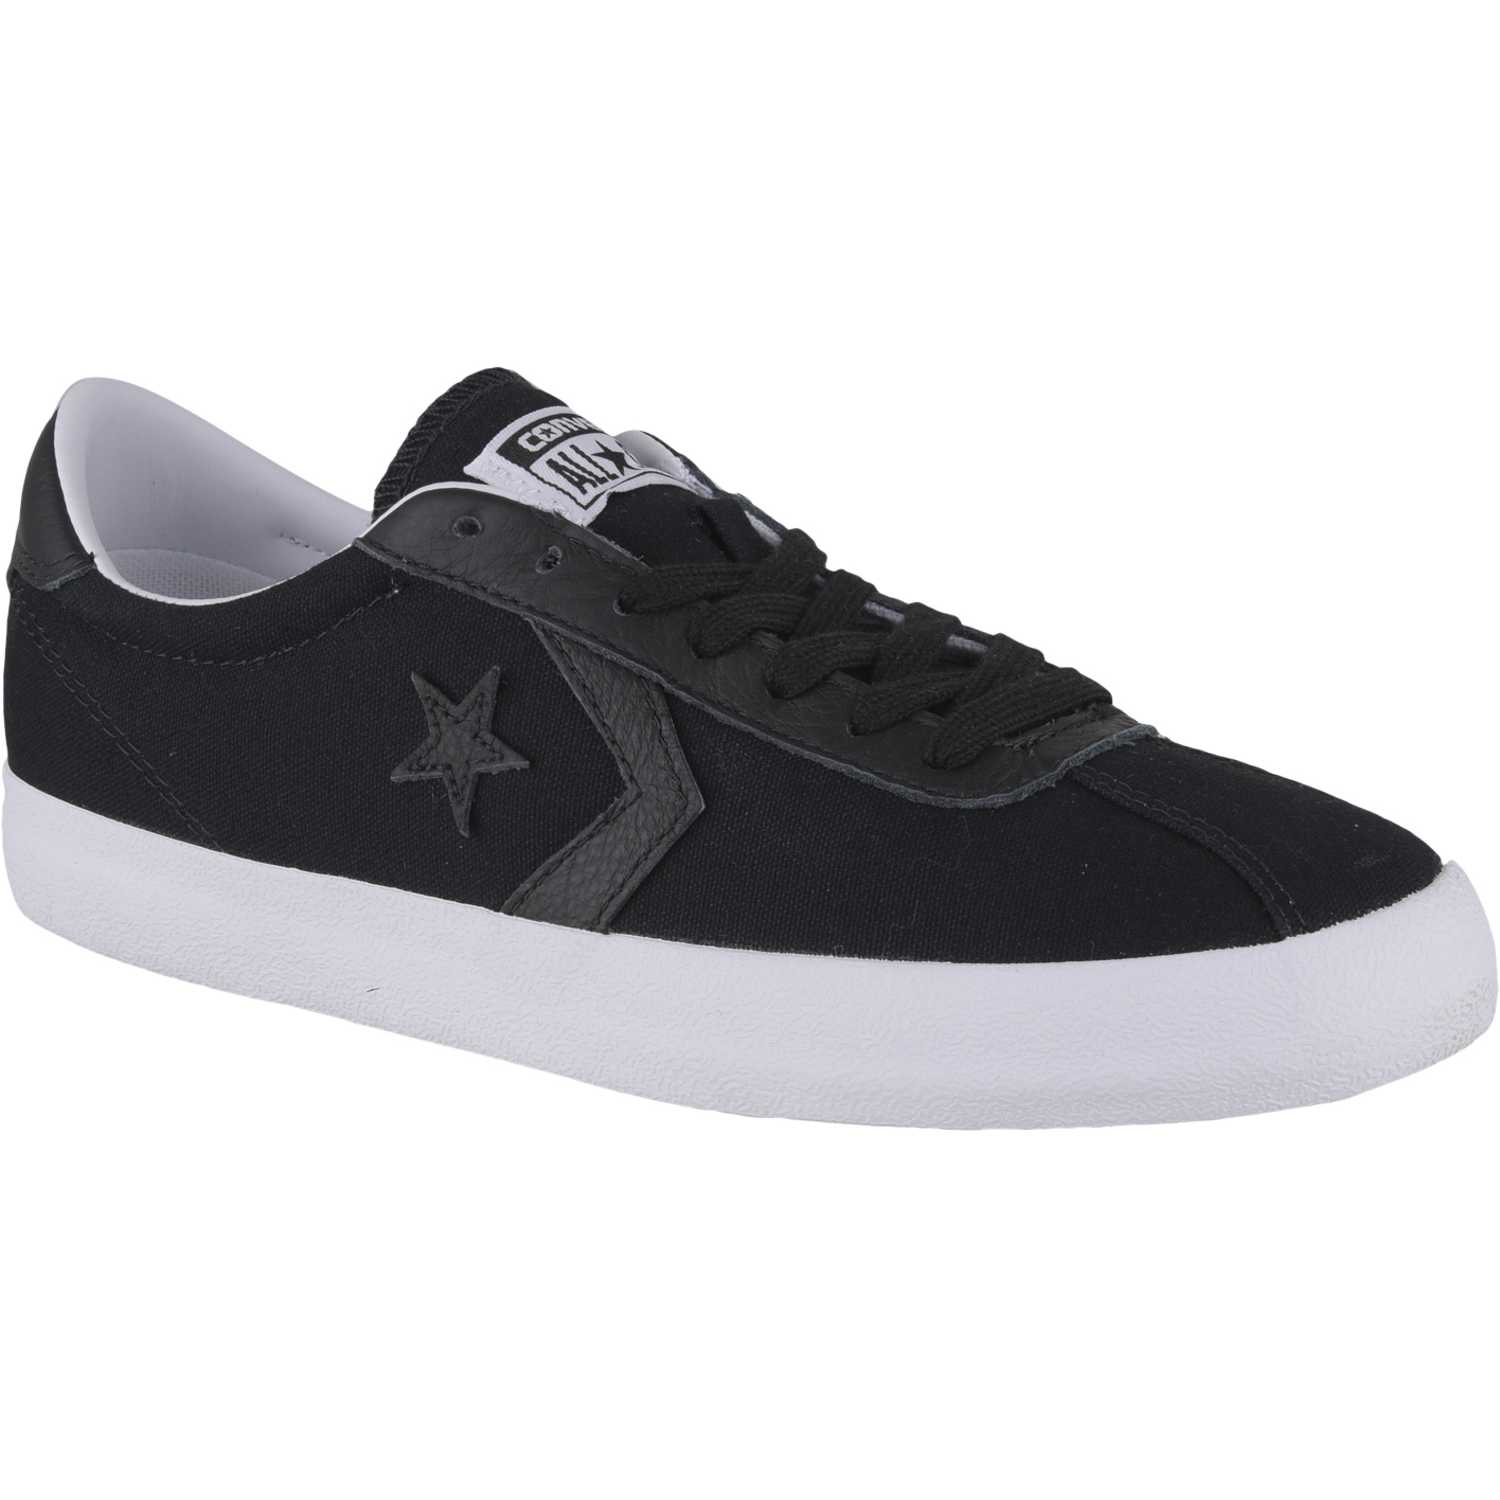 5d0f9cf5a Zapatilla de Hombre Converse Negro   blanco star player canvas ...